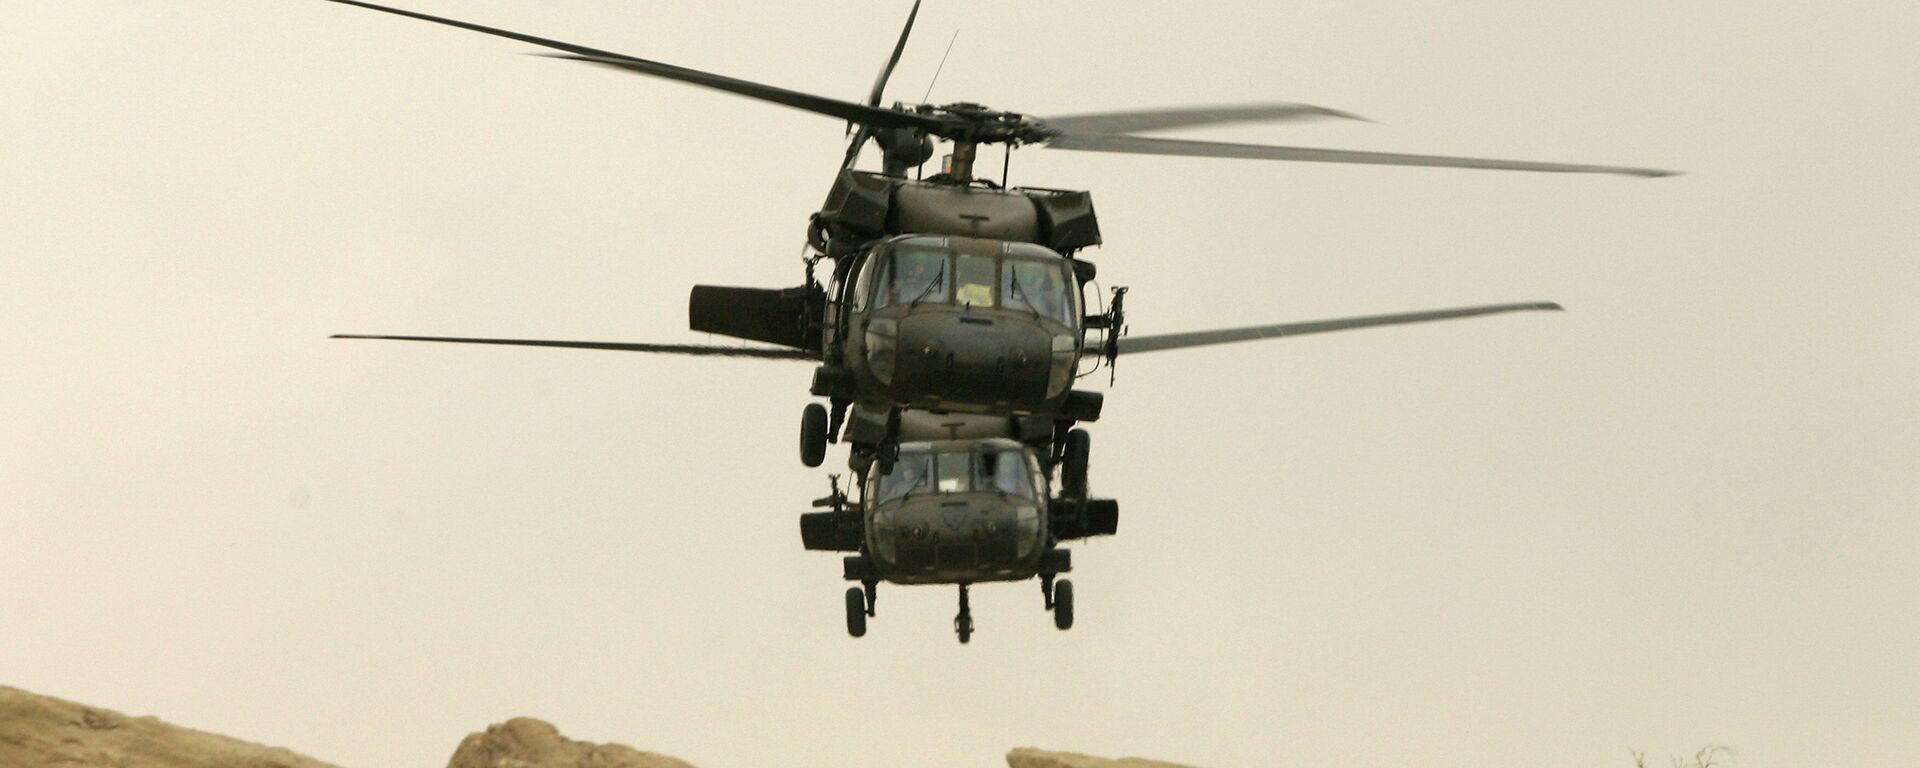 Two US military Black Hawk helicopters take off from its compound in the northern Iraqi city of Mosul (file photo) - Sputnik Mundo, 1920, 12.07.2021